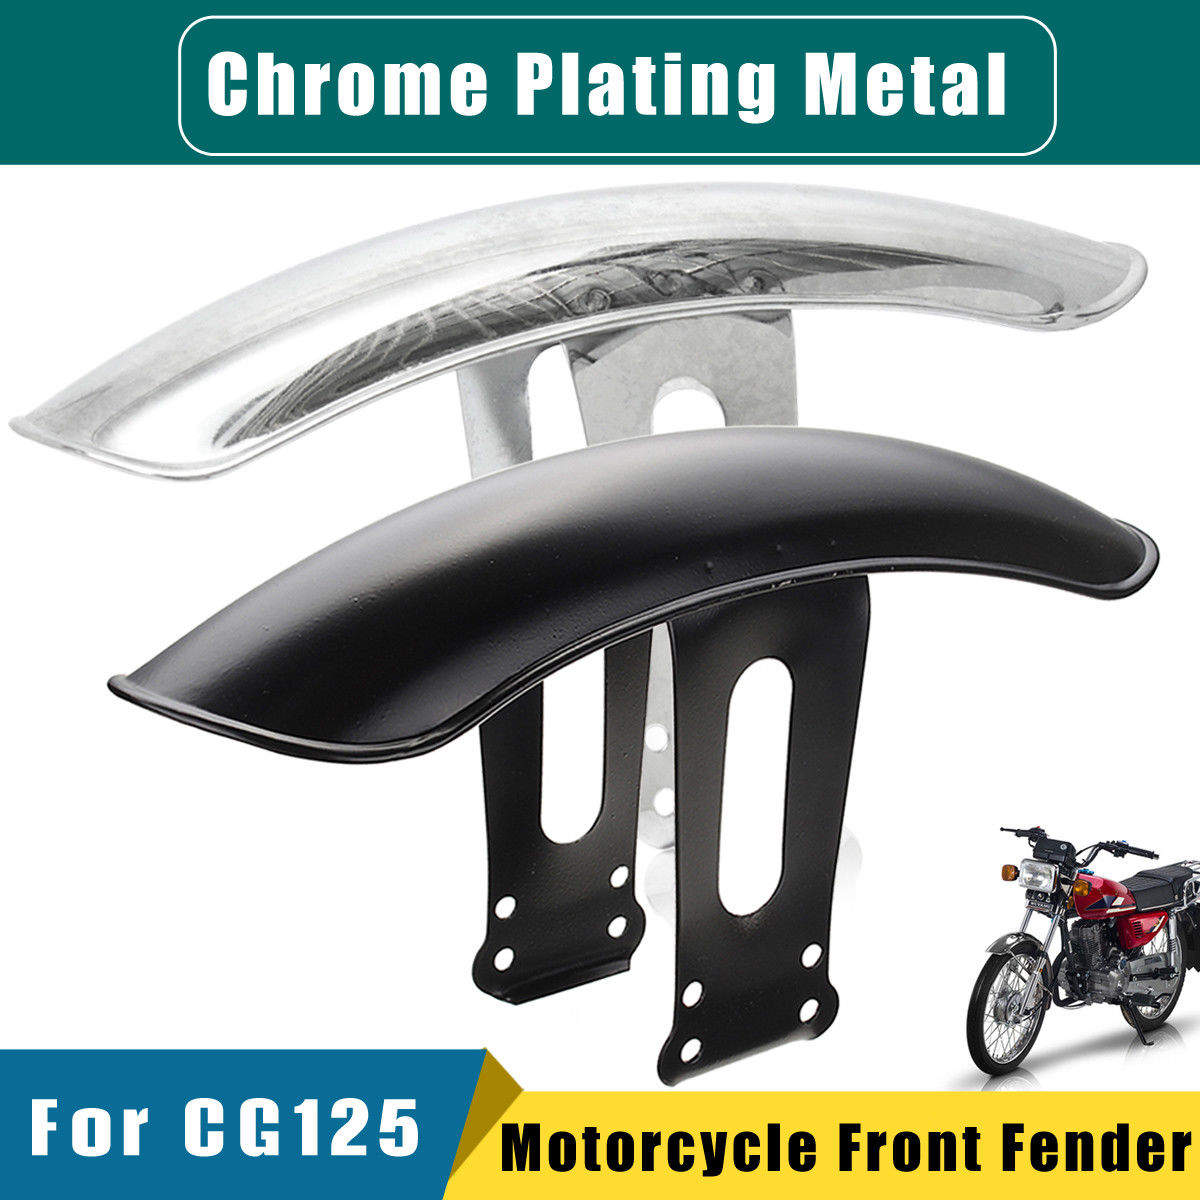 Color : Chrome Black and Chrome 1 PC of Motorcycle Front Fender,Mud Flap Guard Fairing Mudguard Cover for CG125 Retro. Motorcycle Mudguard